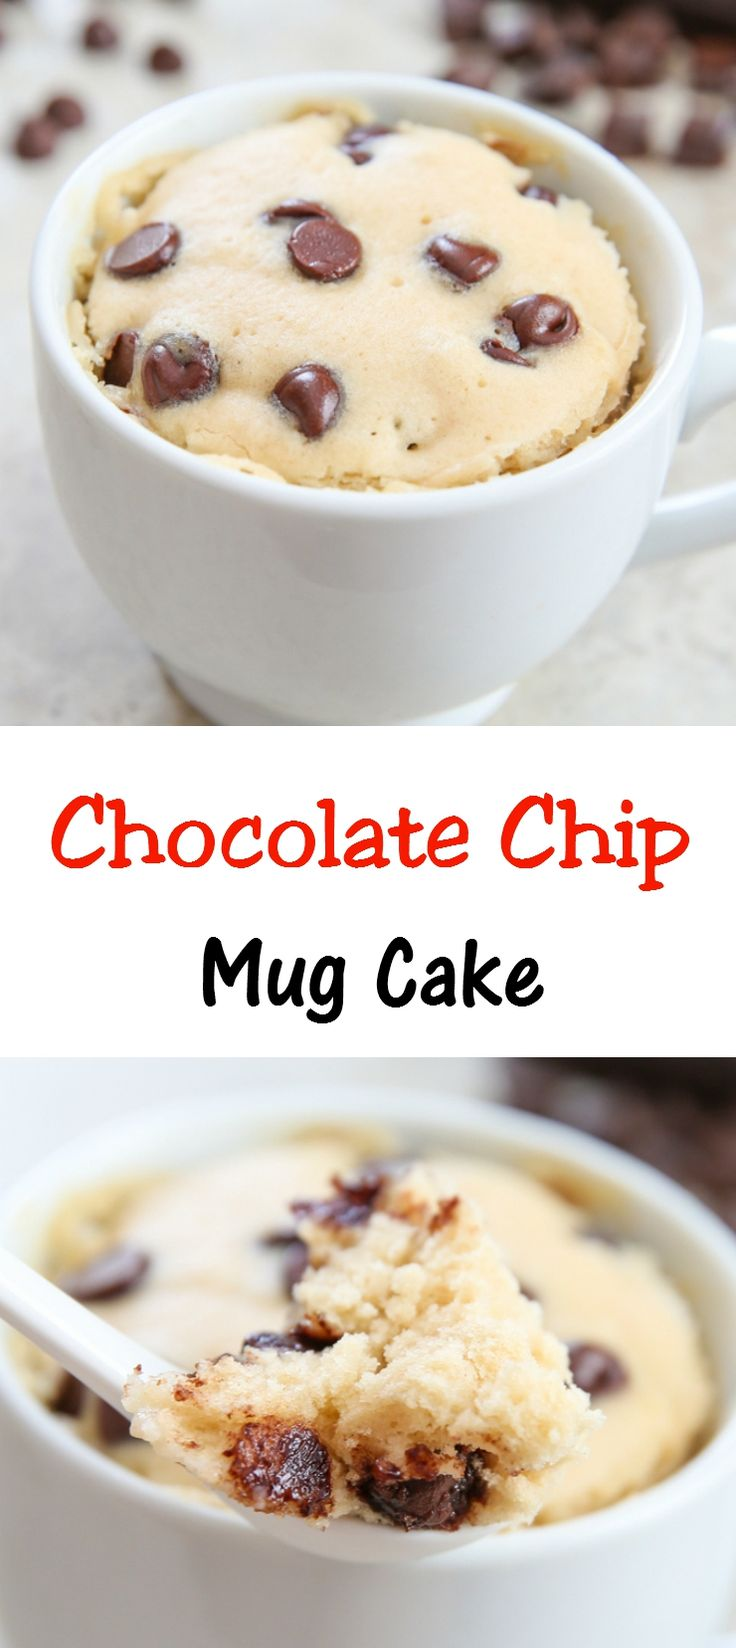 Chocolate Chip Mug Cake | Kirbie's Cravings | A San Diego food & travel blog Just replace the milk with almond milk.